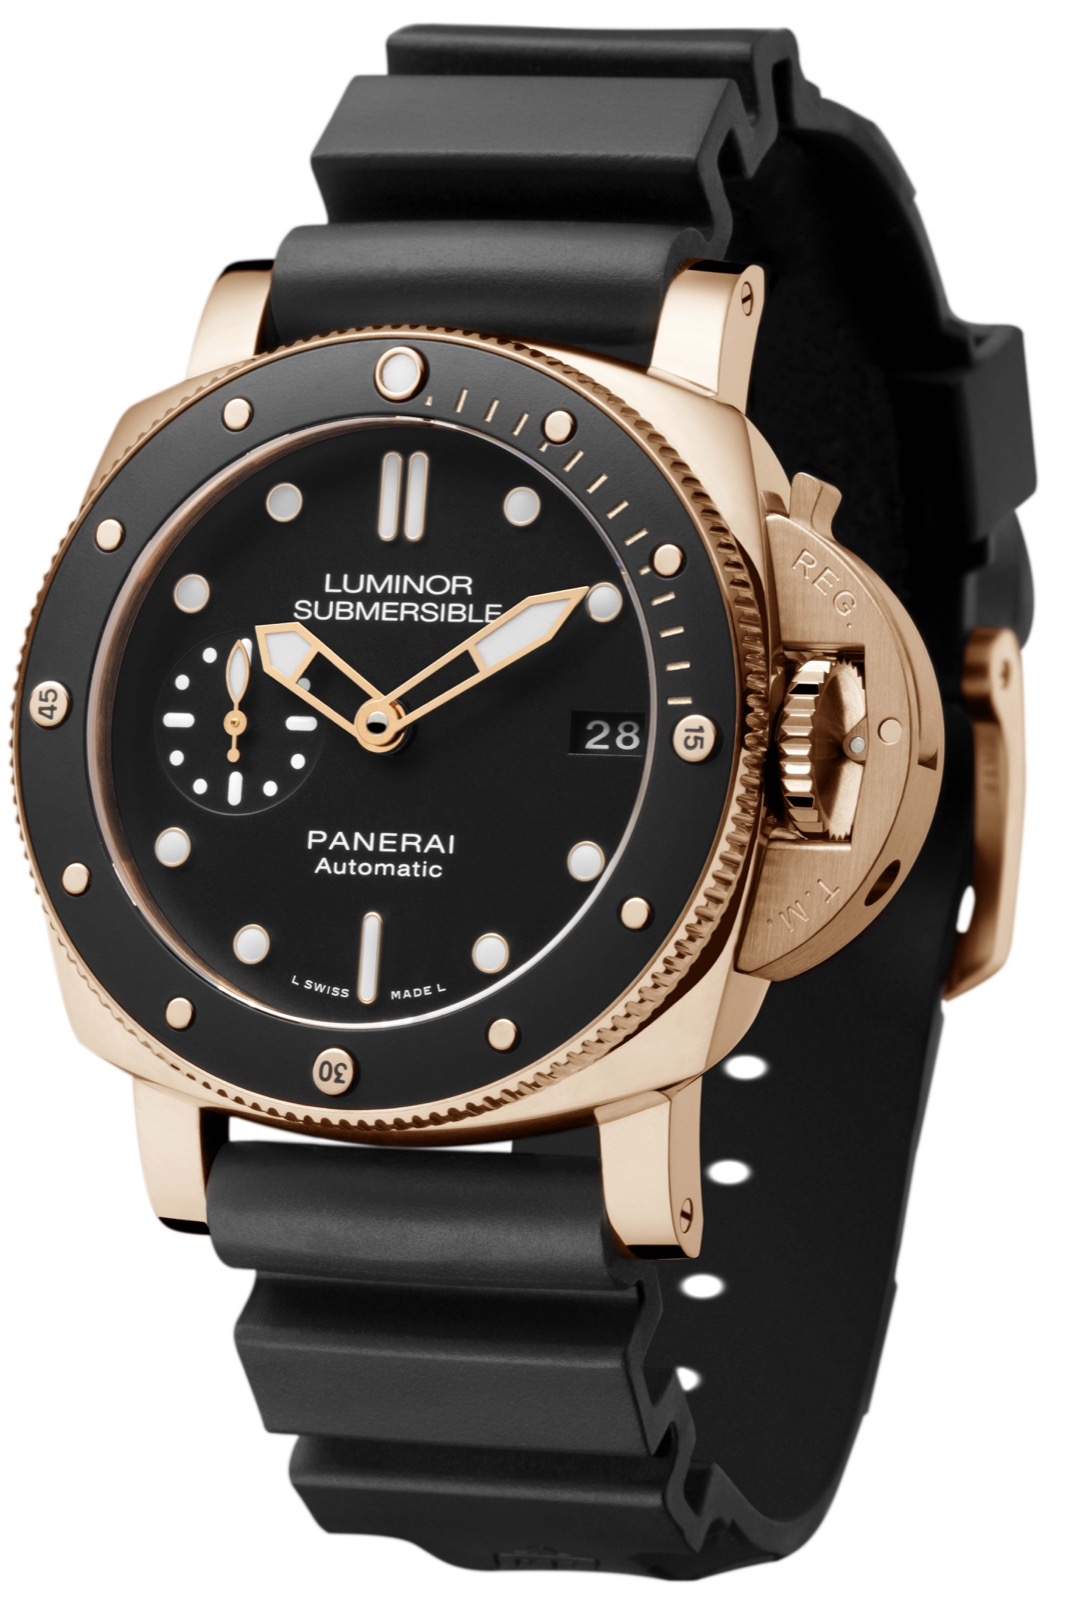 PANERAI LUMINOR SUBMERSIBLE 1950 3 DAYS AUTOMATIC ORO ROSSO (PAM684) - 42mm